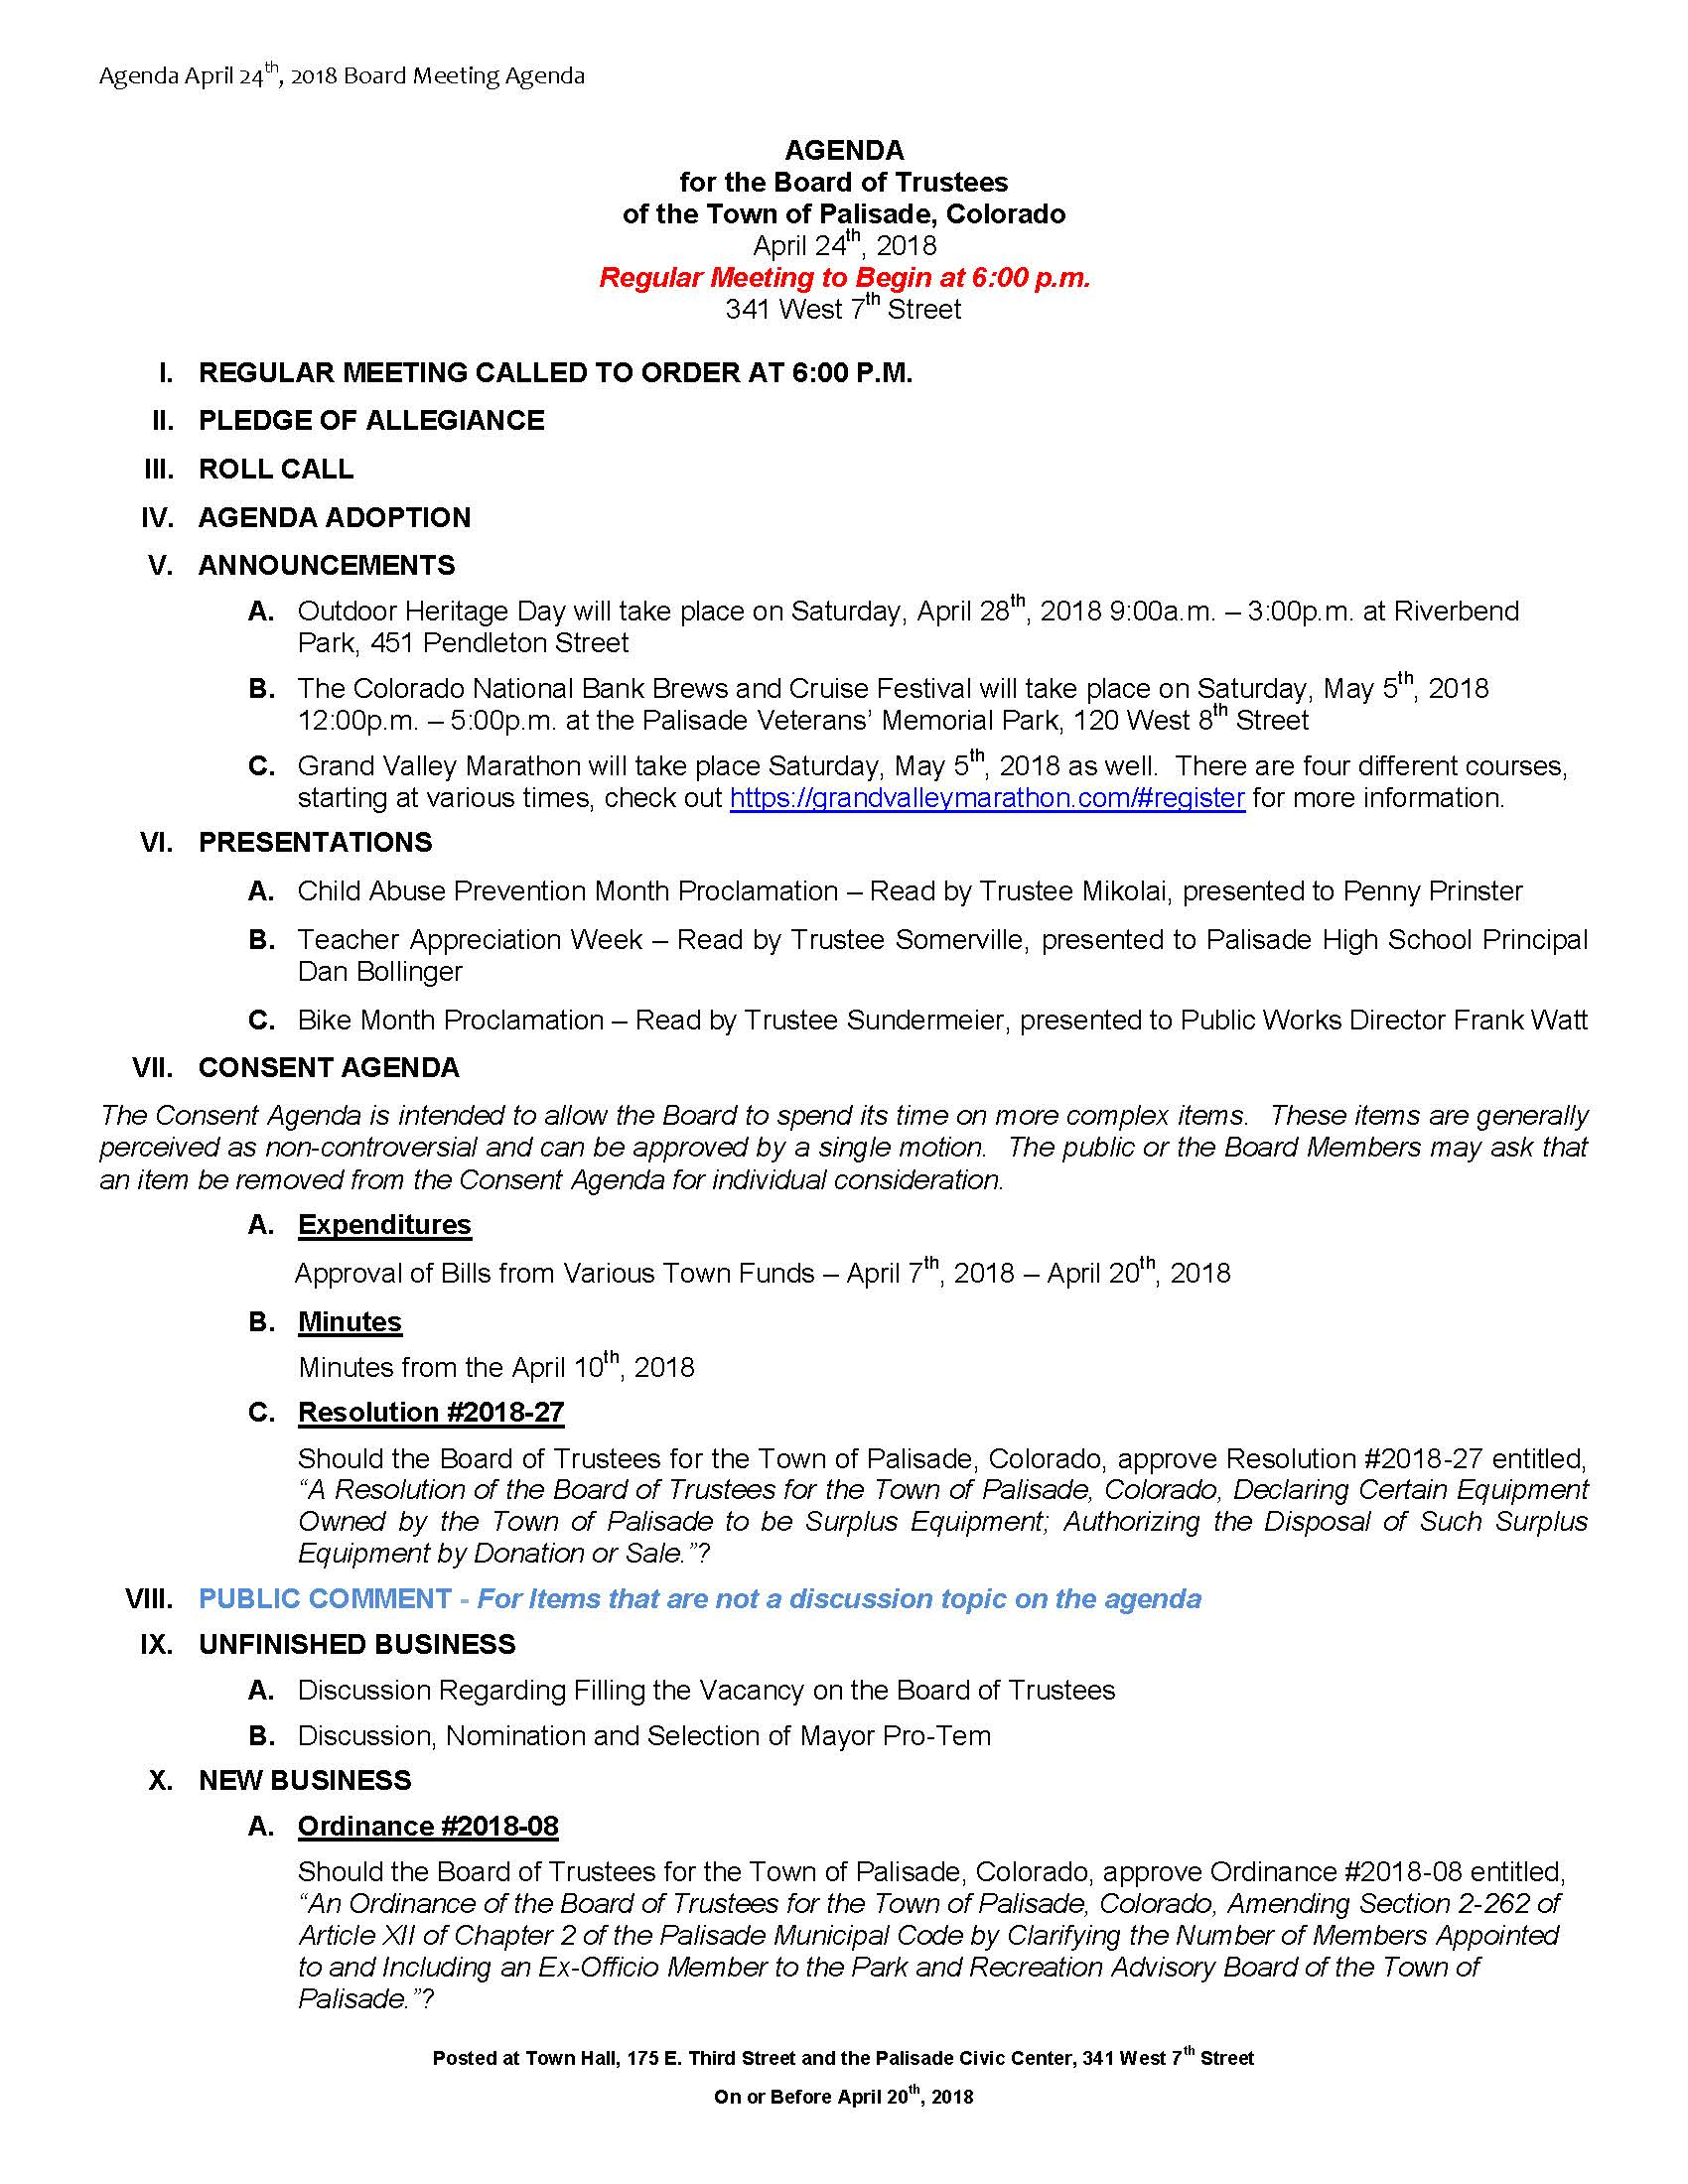 April 24th 2018 Board Meeting Agenda Page 1